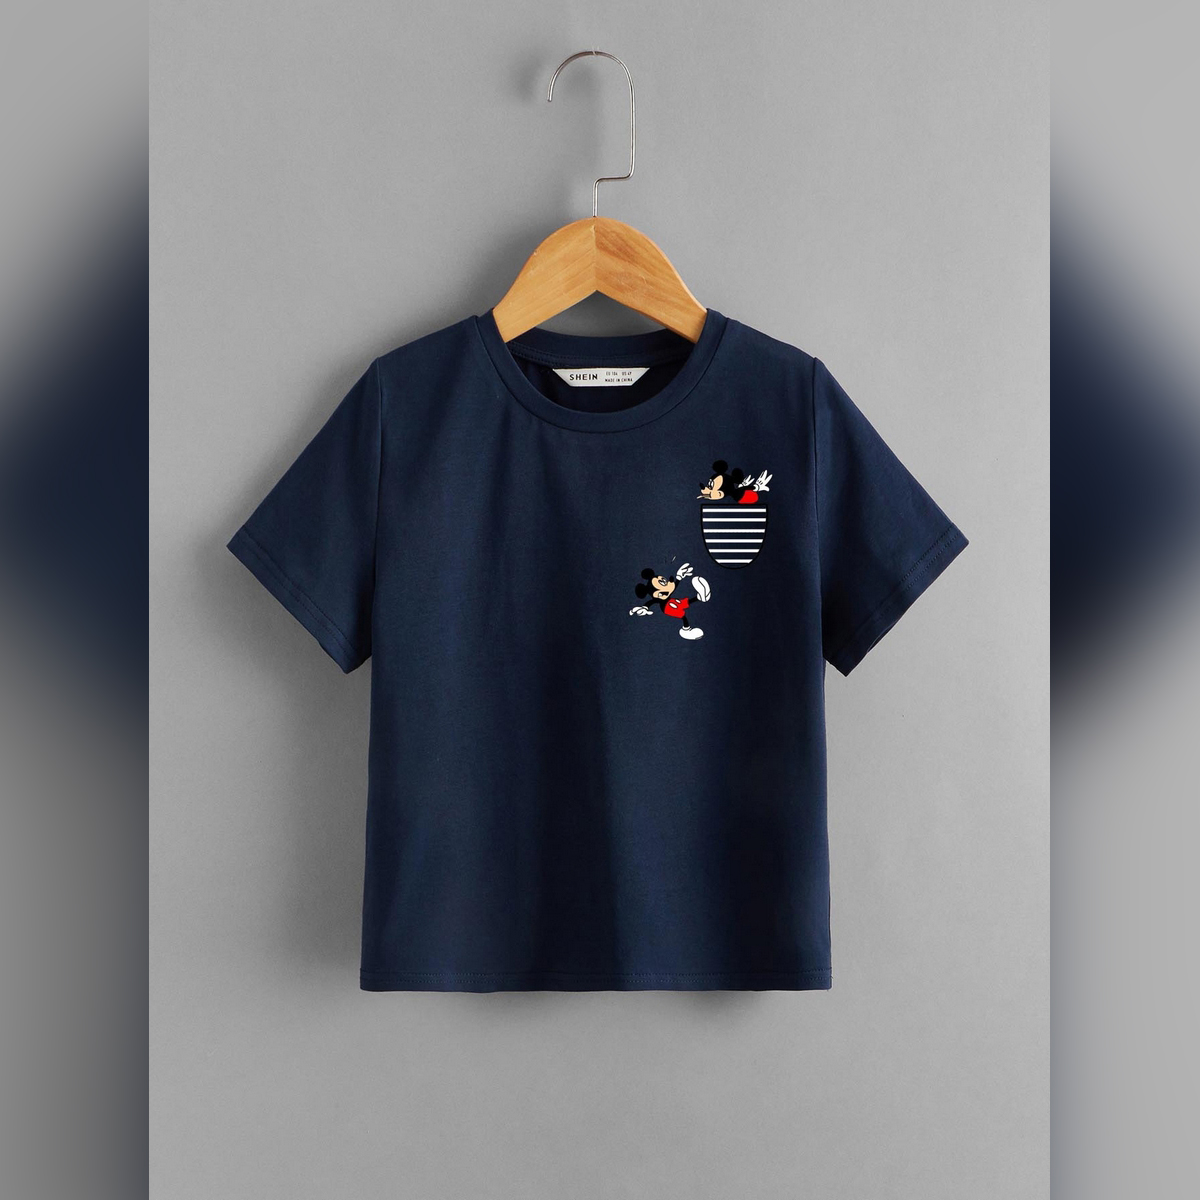 The Hanger Pocket Mickey Mouse Logo Printed T-Shirt For Kids